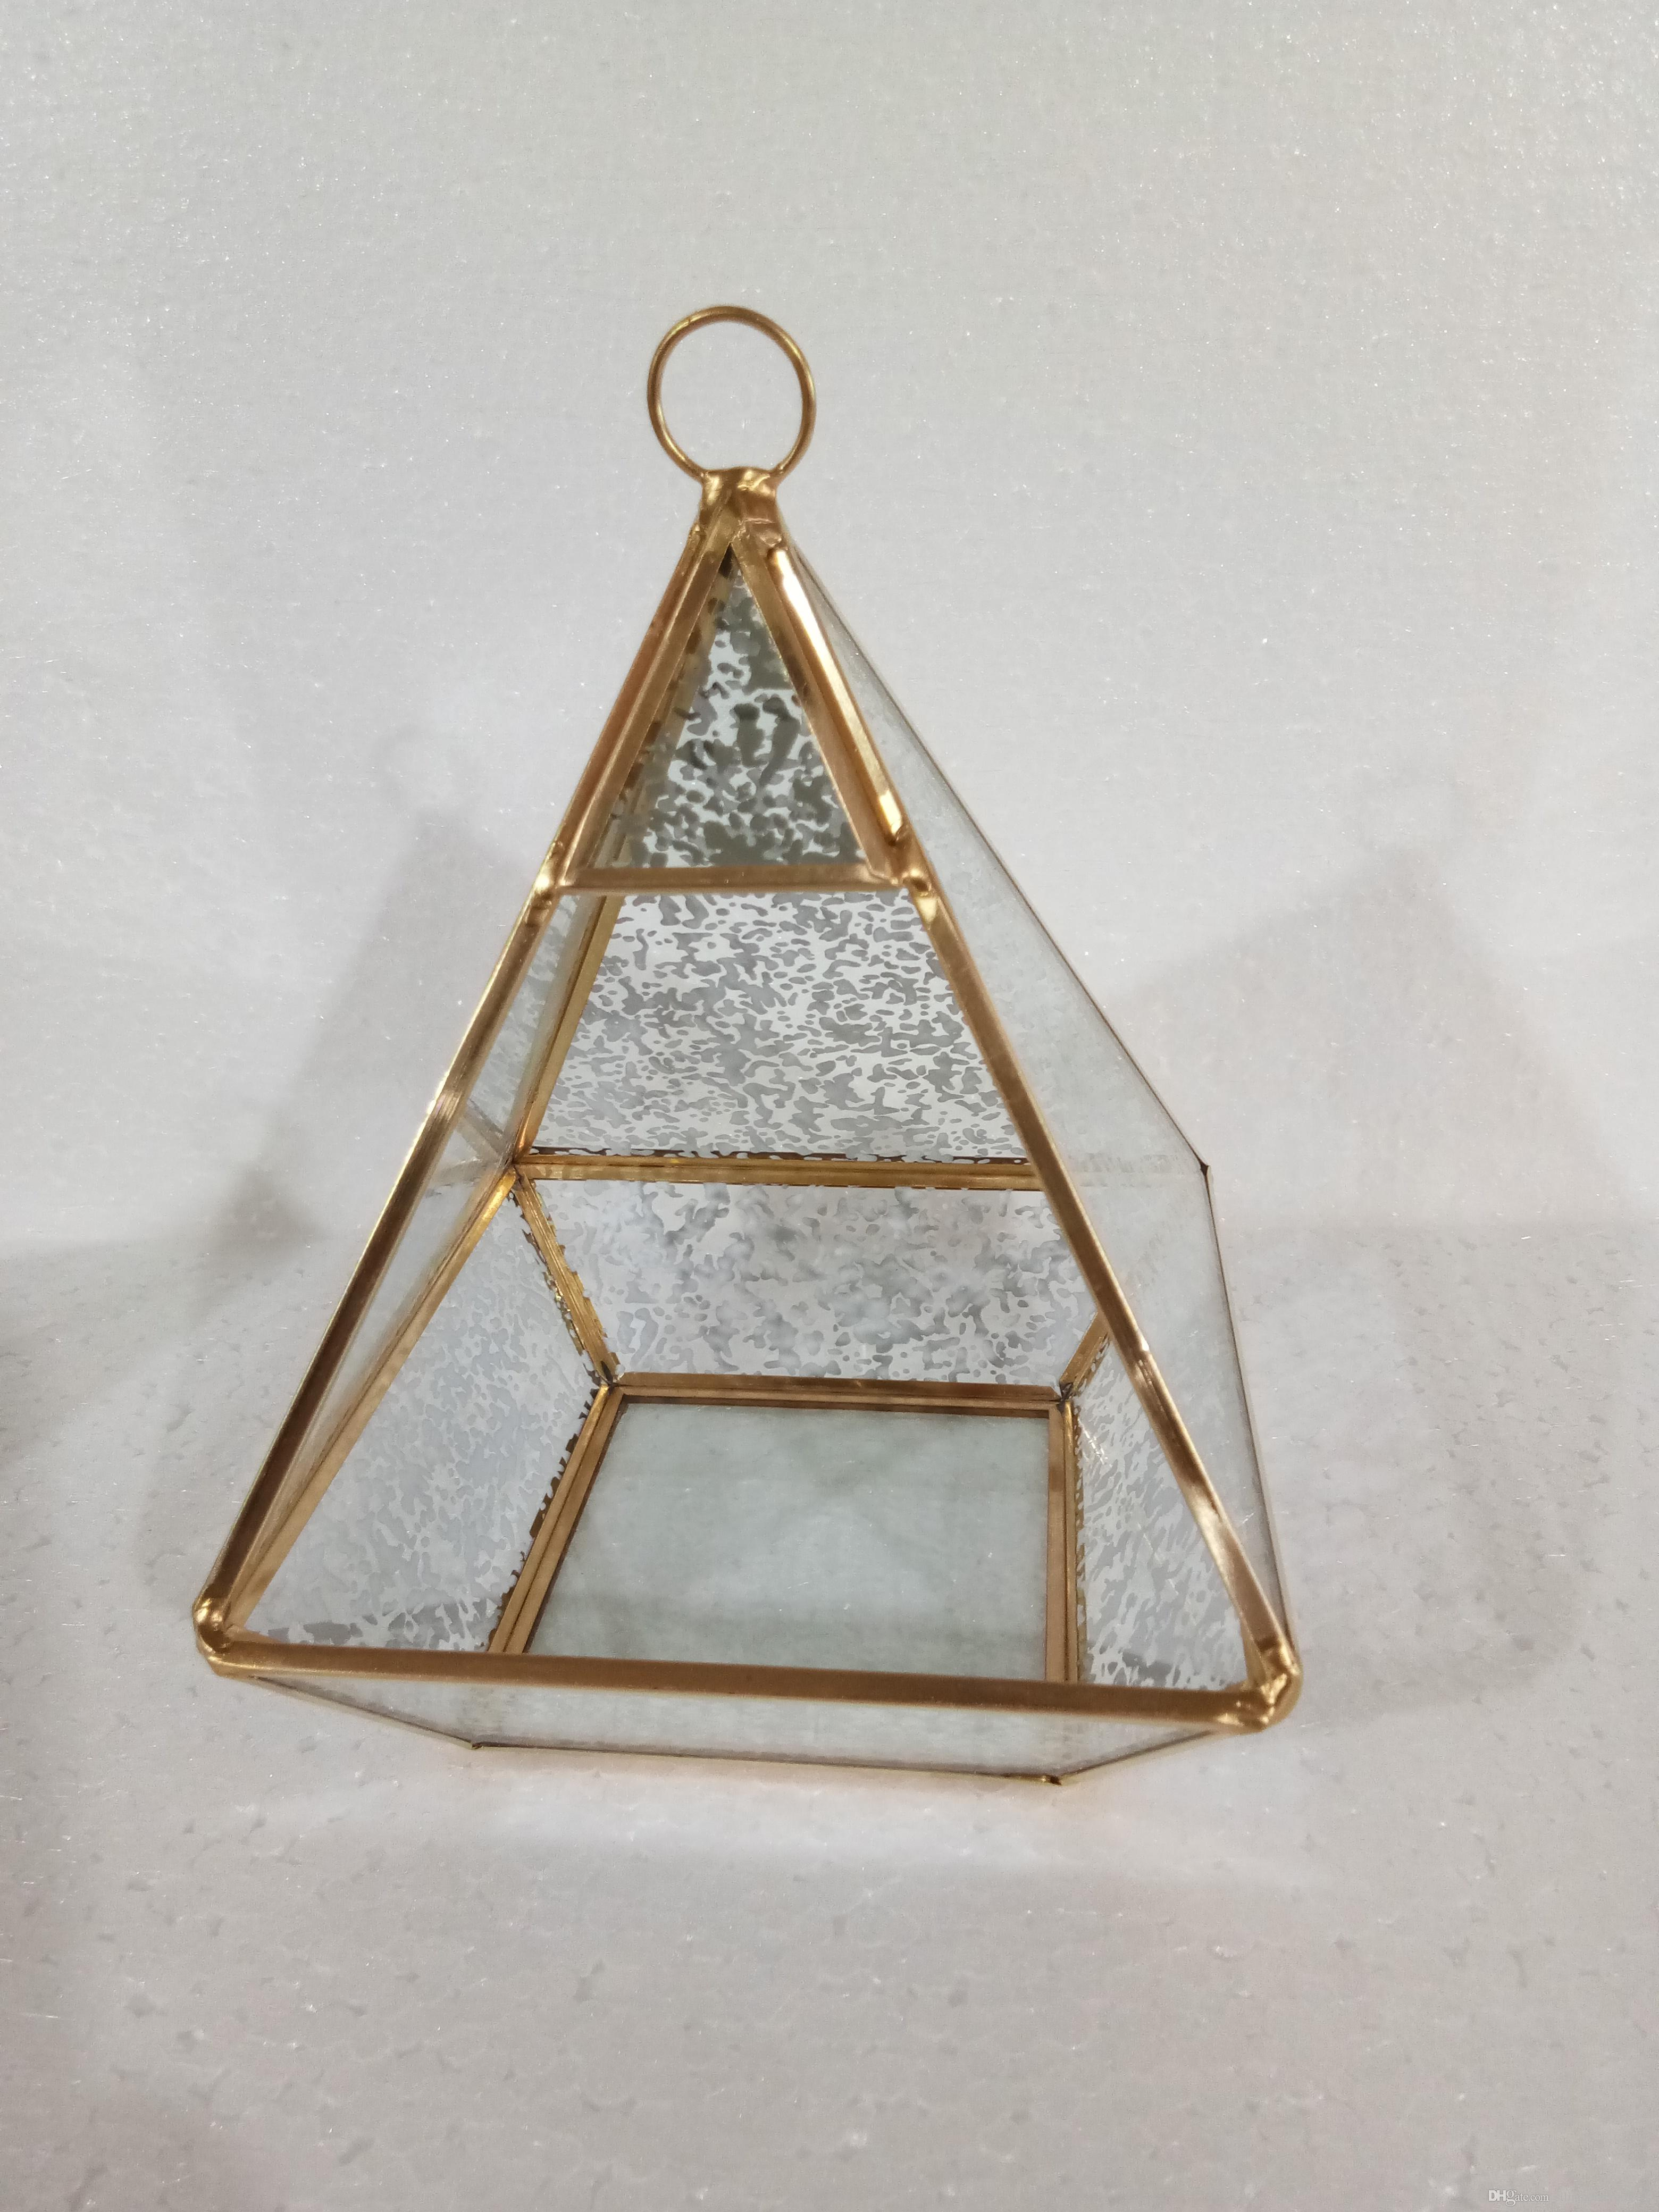 Geometry Glass Terrarium For Home And Garden Decoration From China